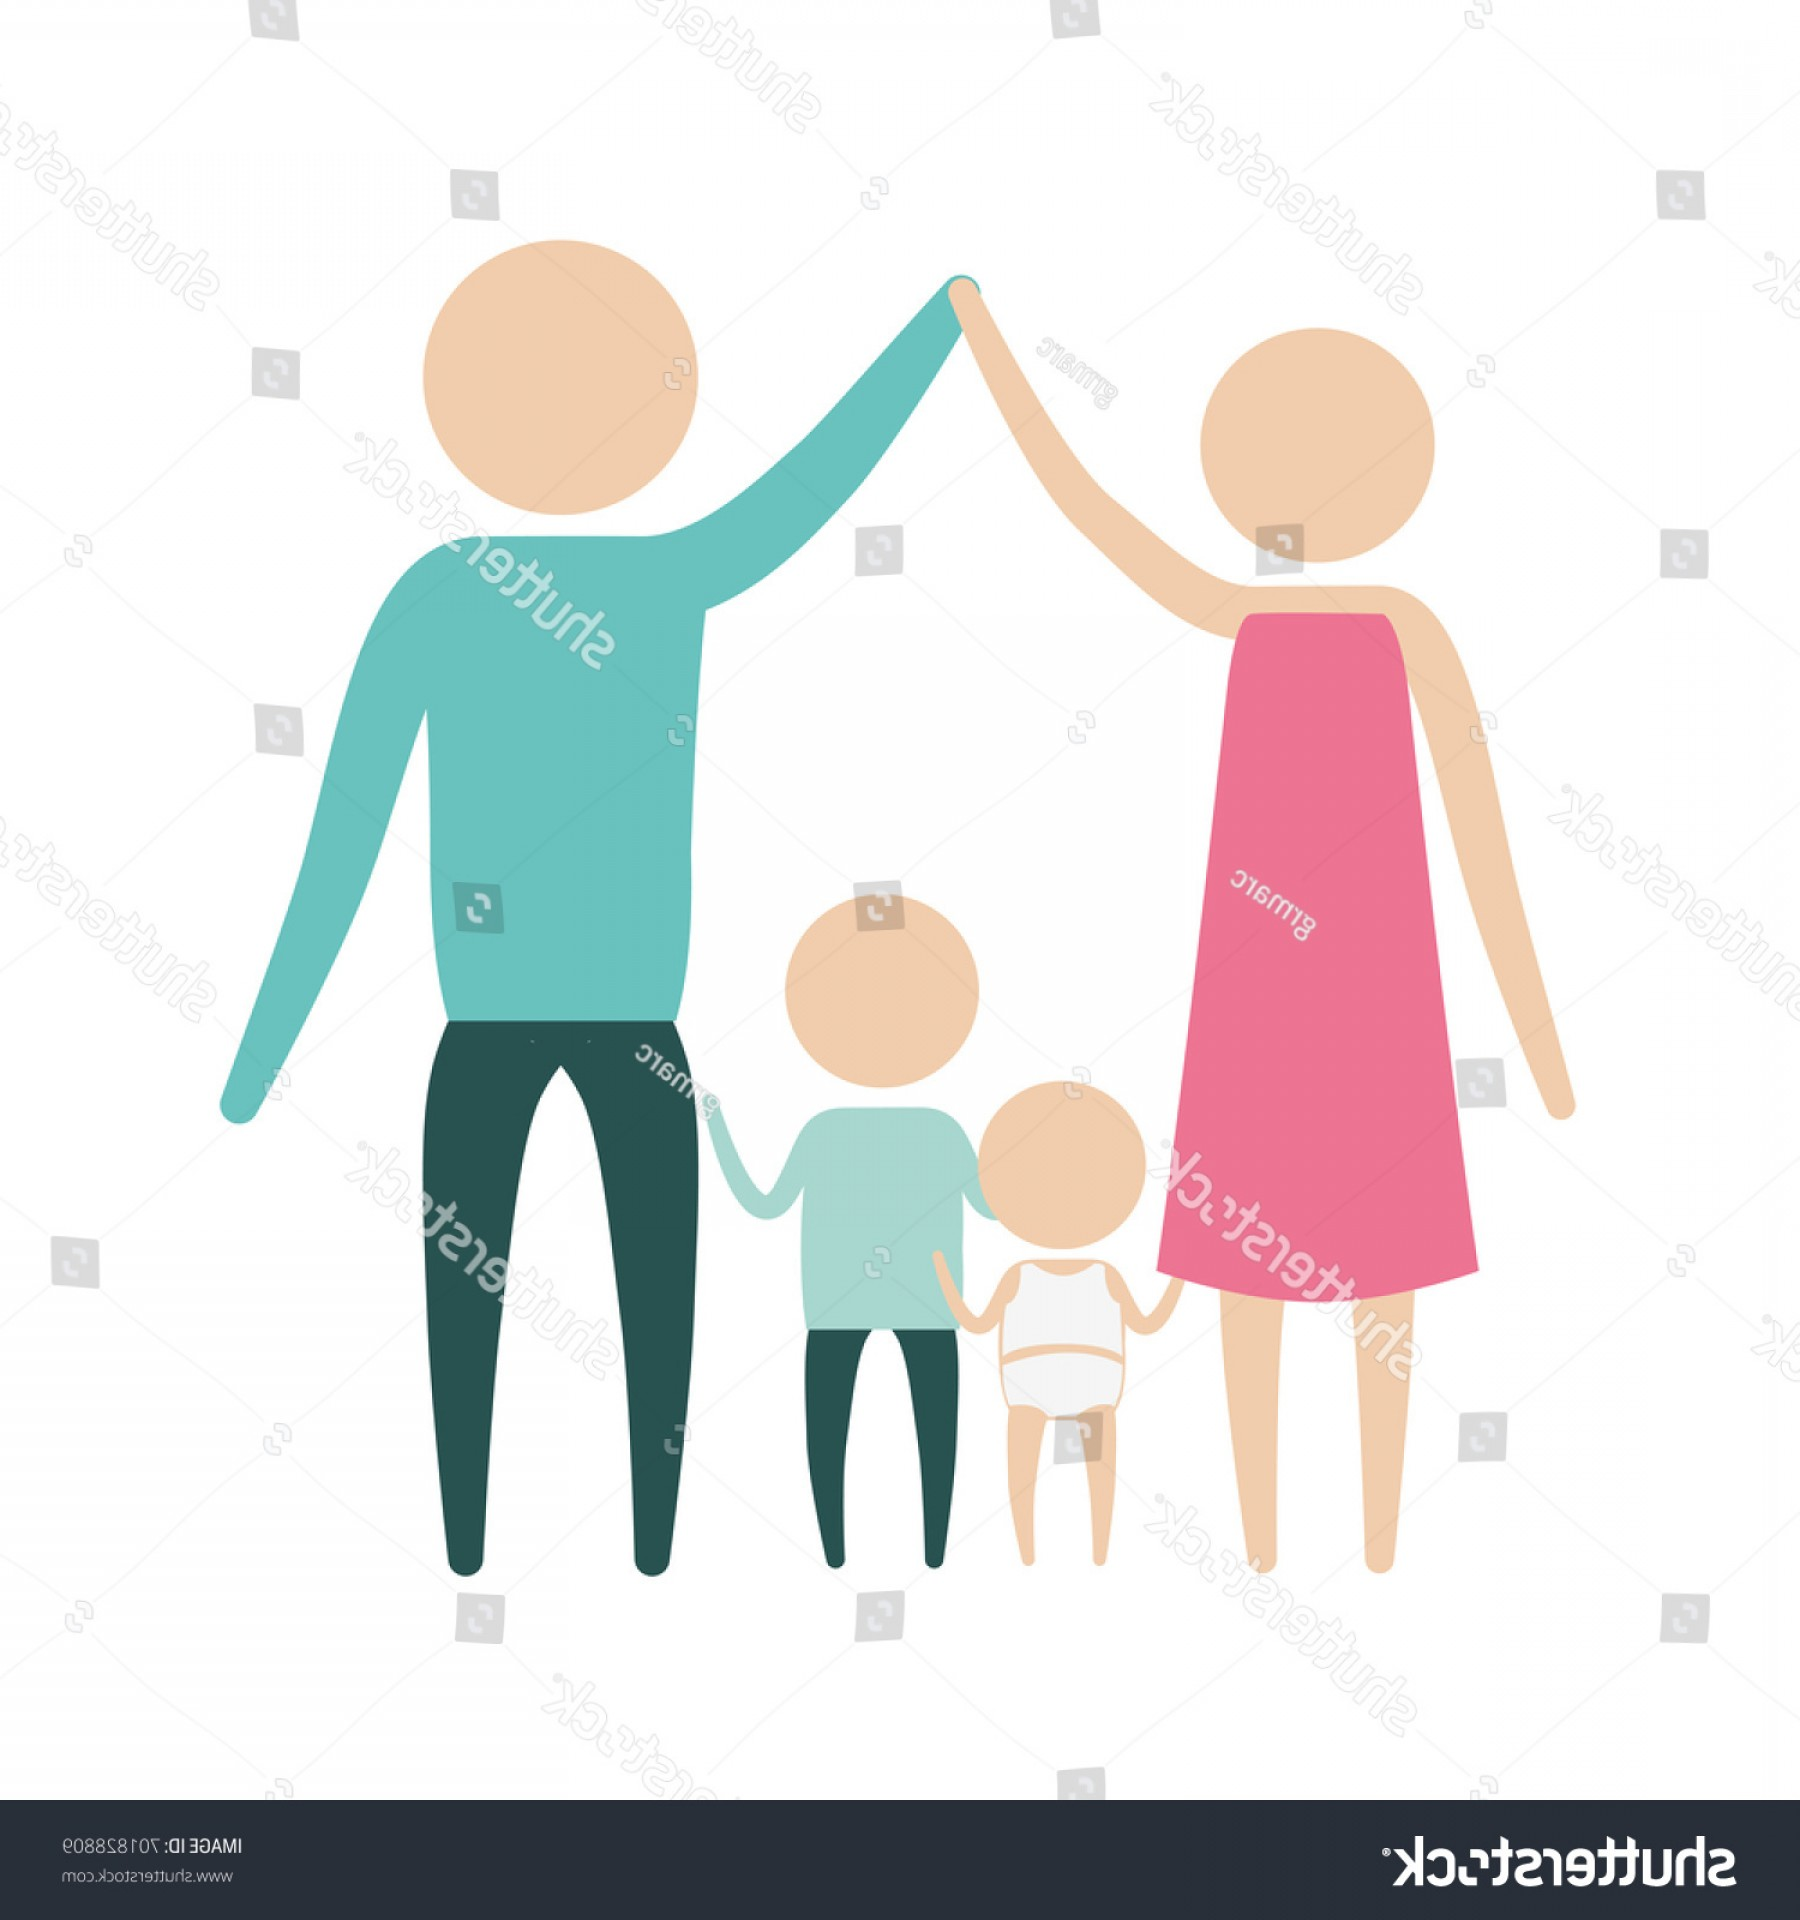 Holding Hands Up Silhouette Vector: Color Silhouette Pictogram Parents Holding Hands